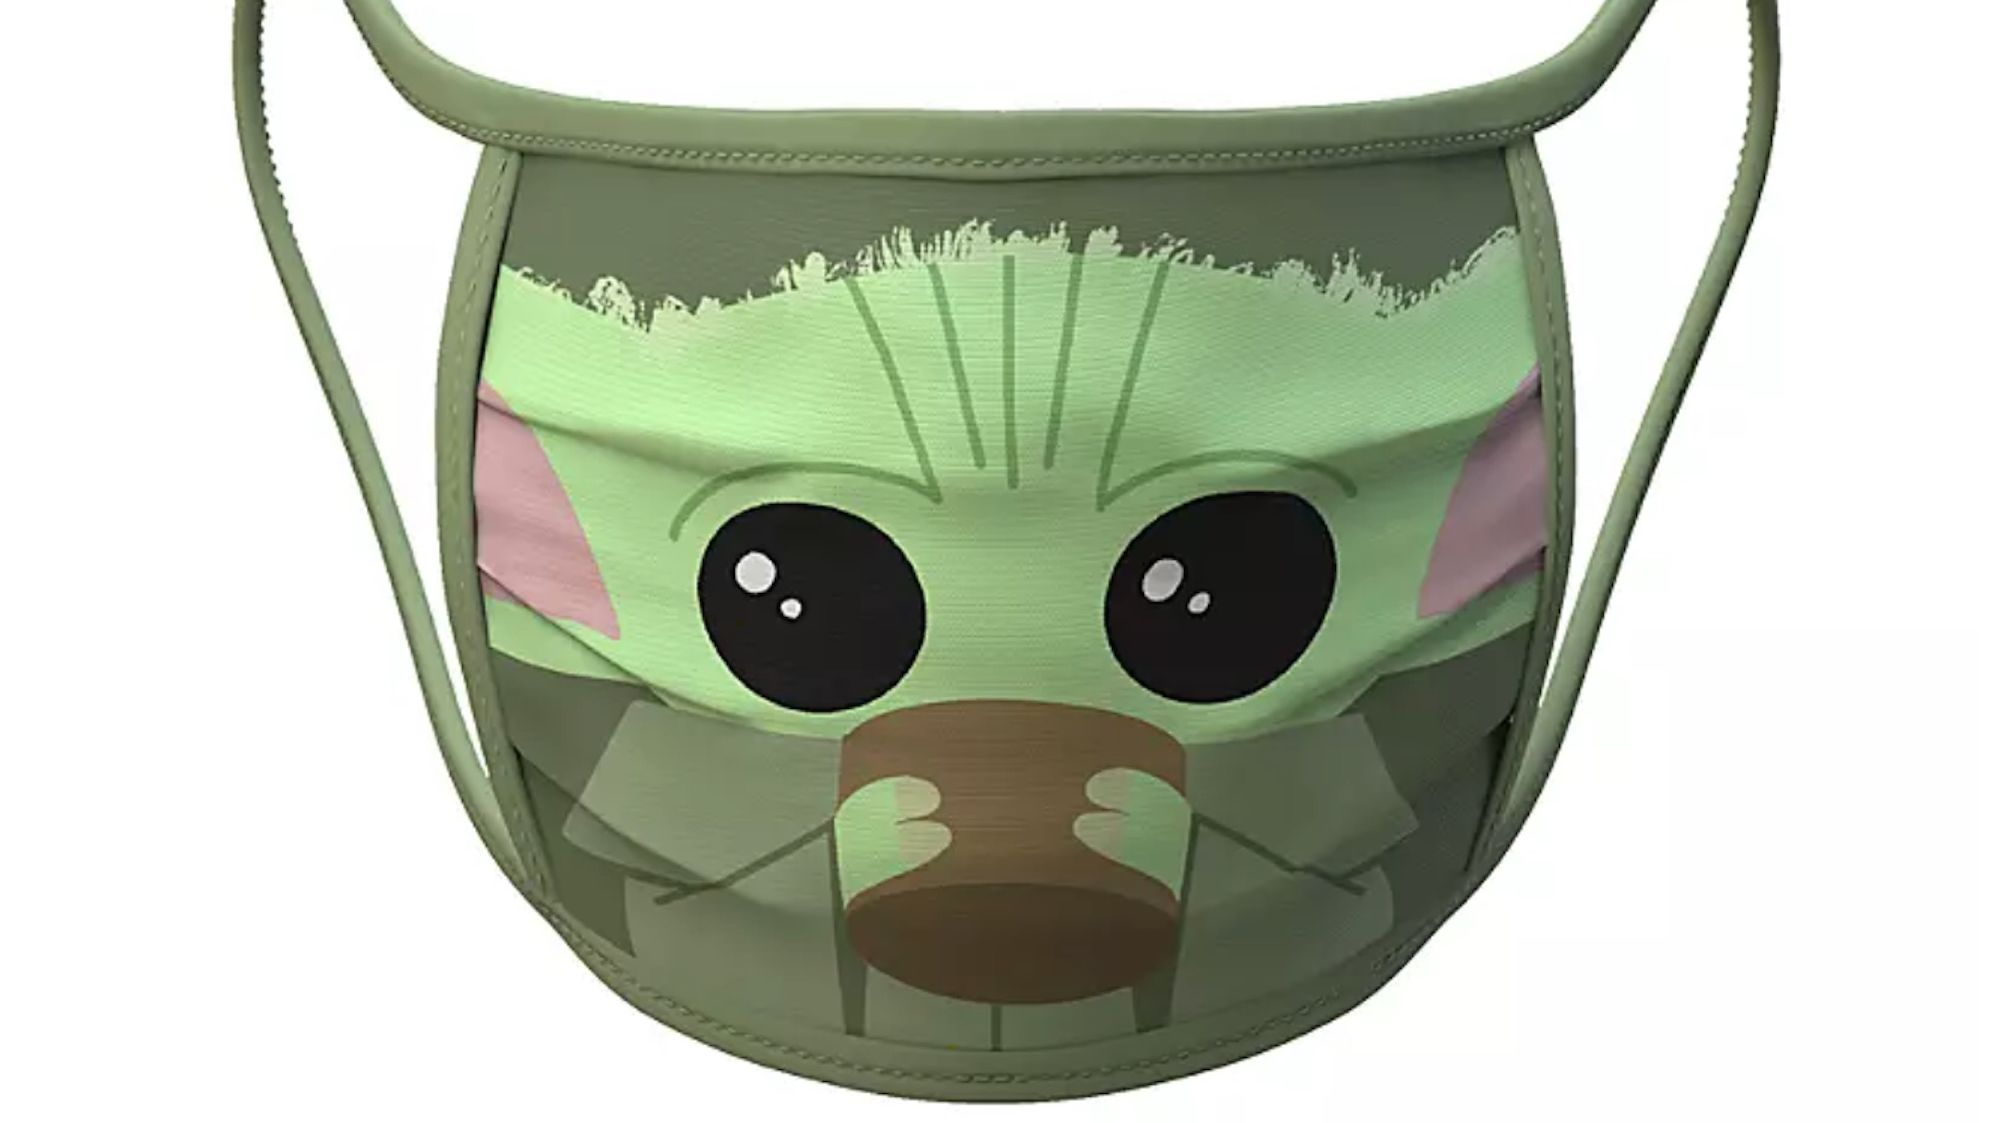 Baby Yoda Face Masks Are Now Available | Mental Floss